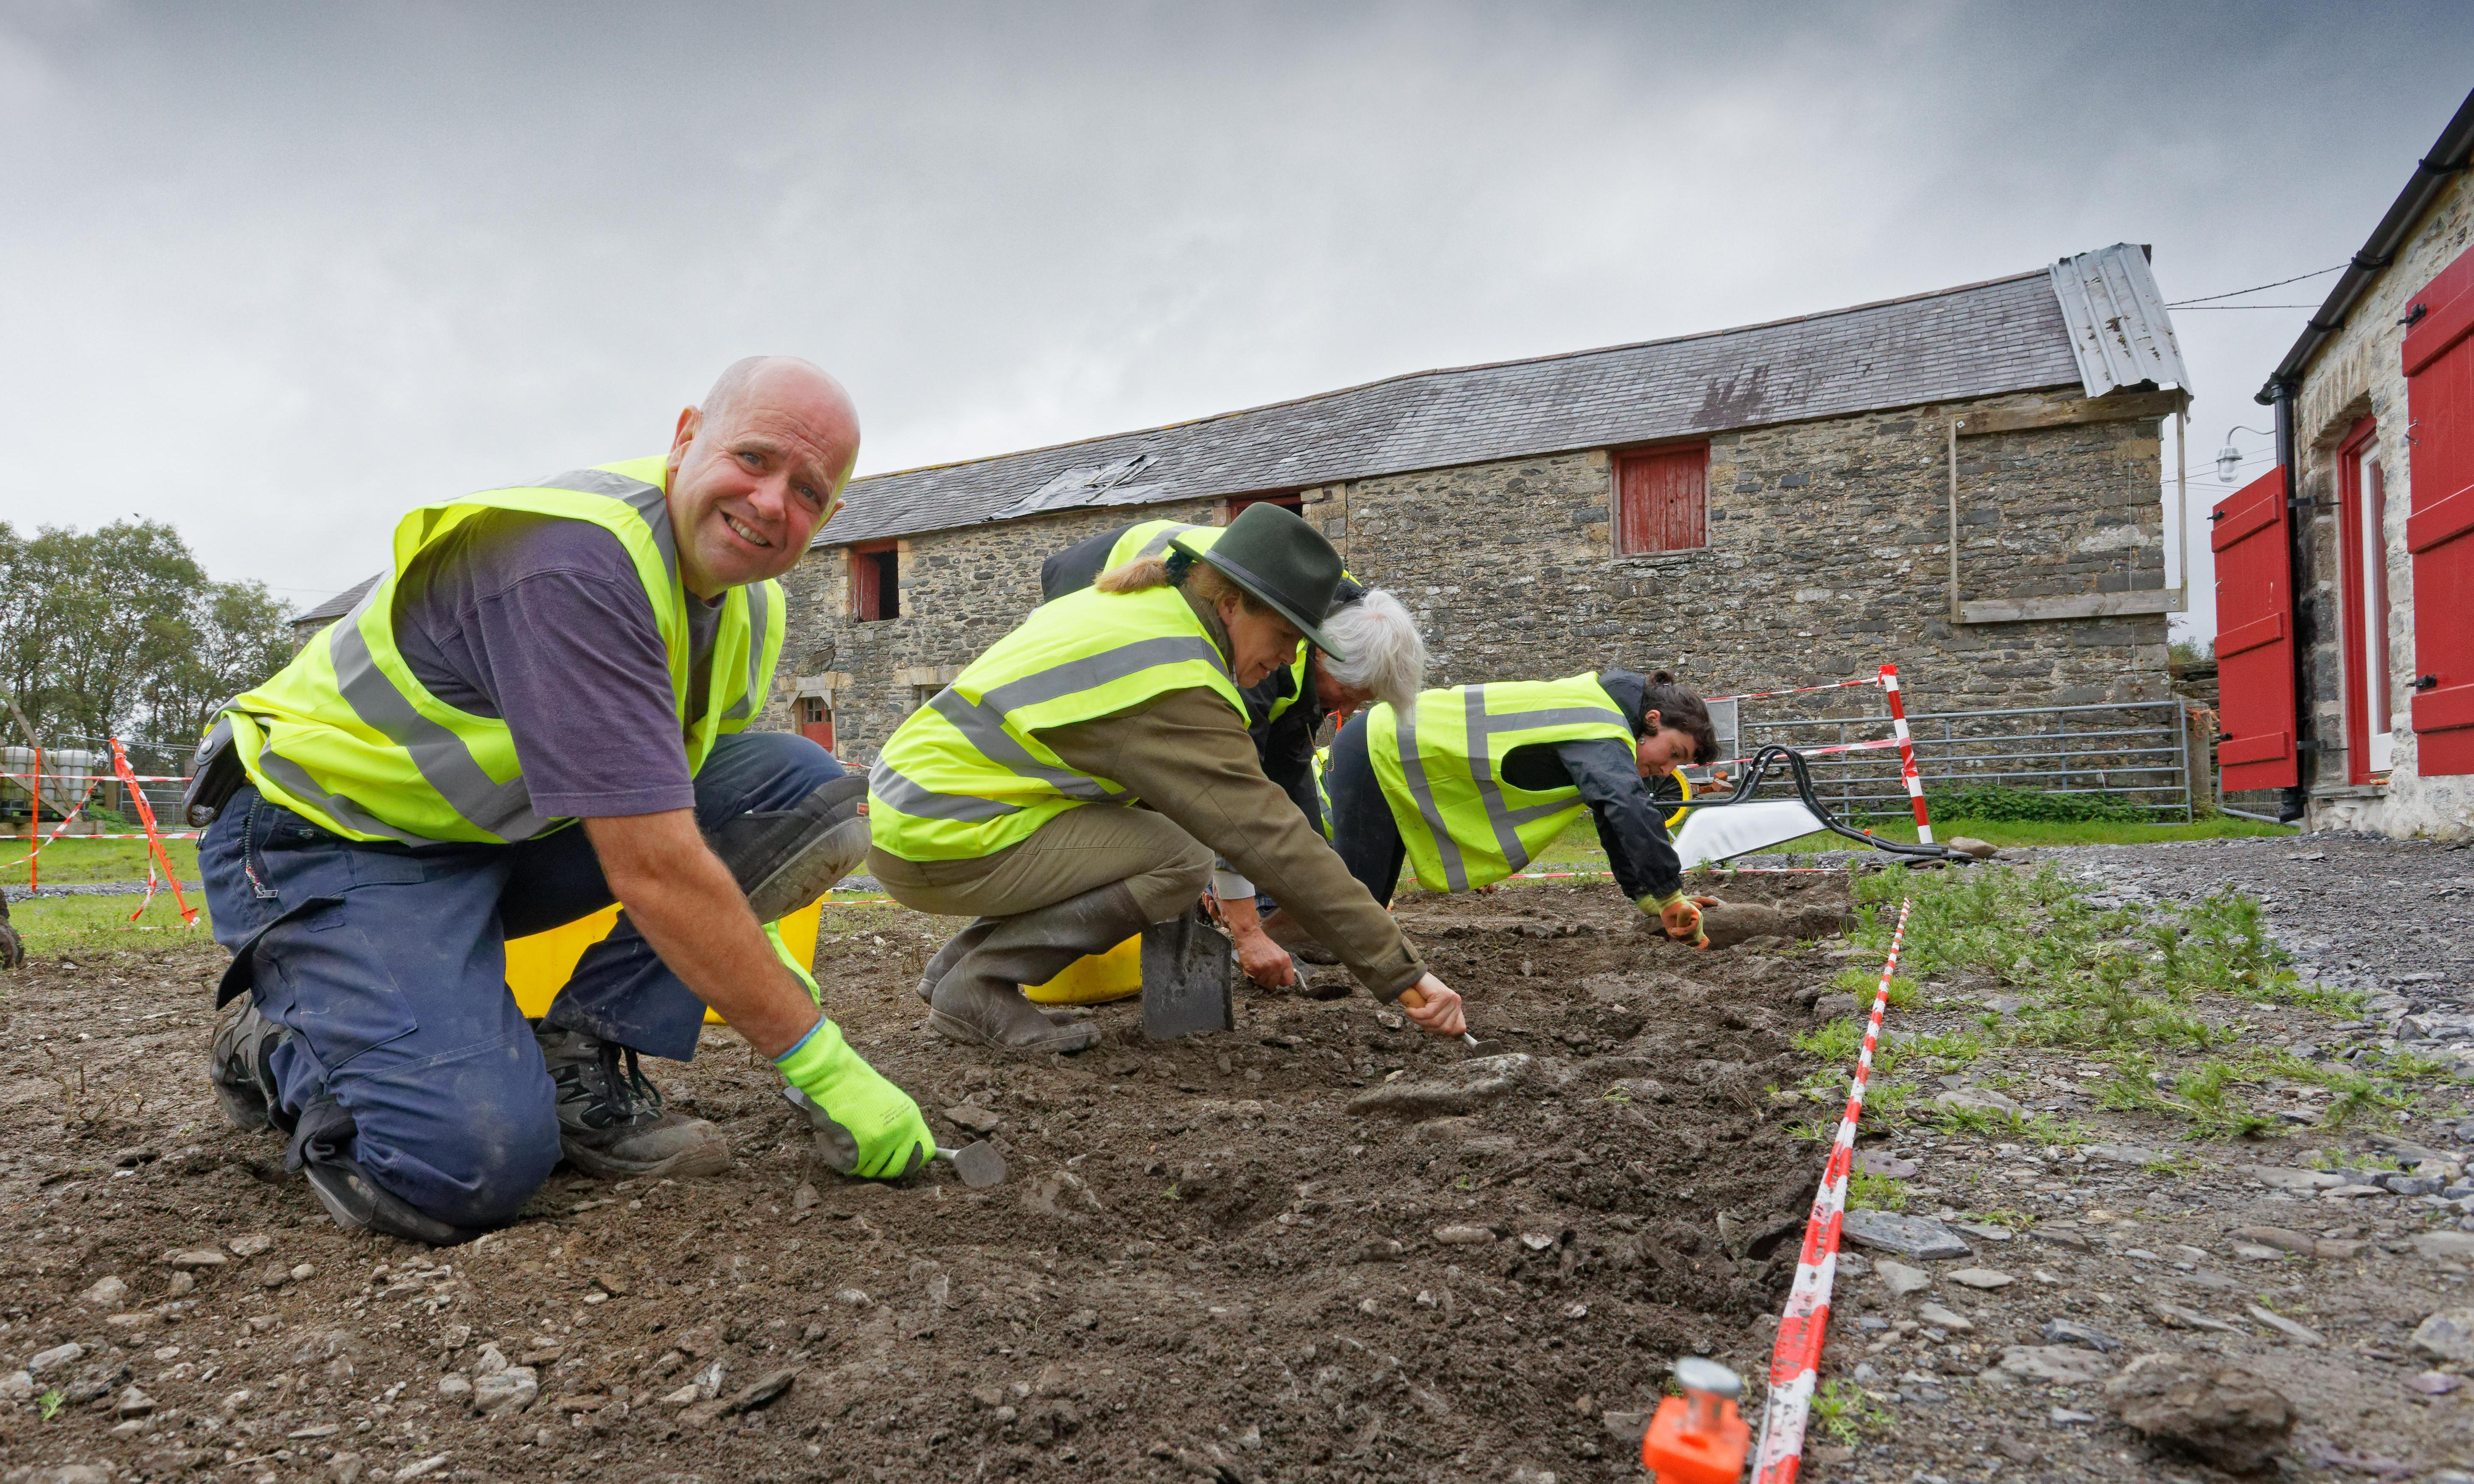 Dig for victory: how archaeology can help veterans' mental health